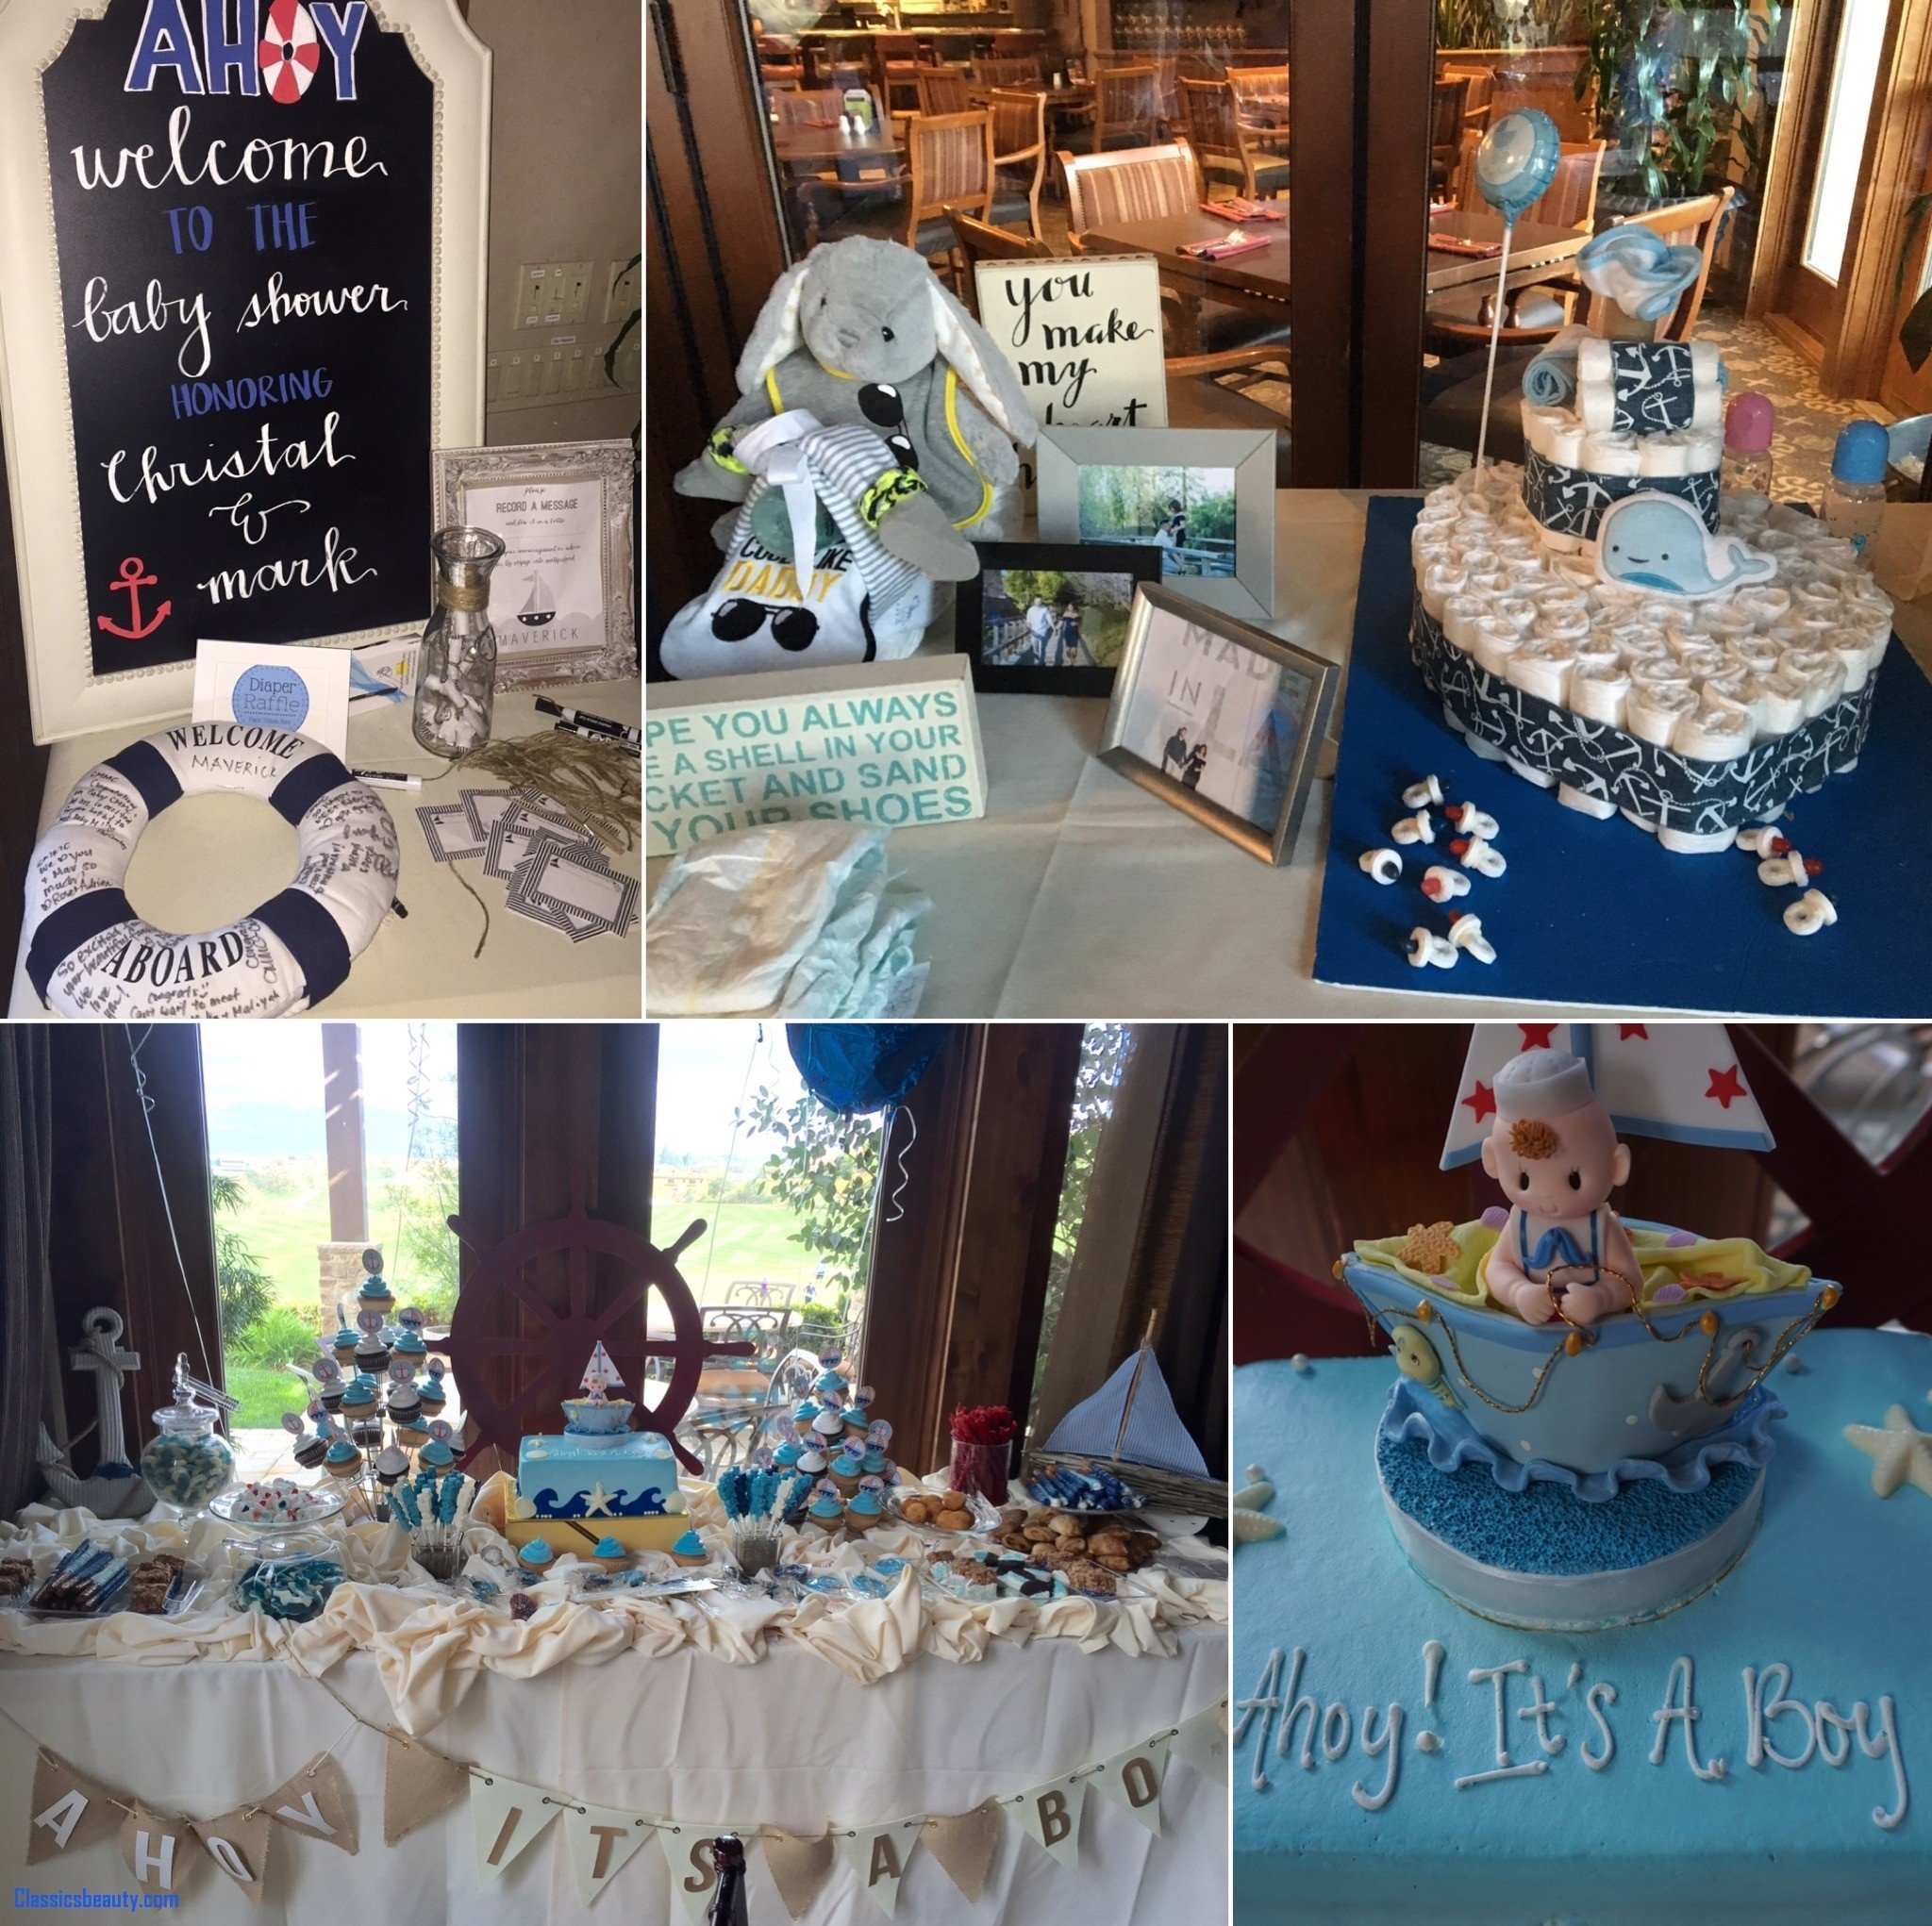 10 Trendy Baby Shower For Boys Ideas fascinating baby shower decoration ideas for boy 4 oliveargyle 2021